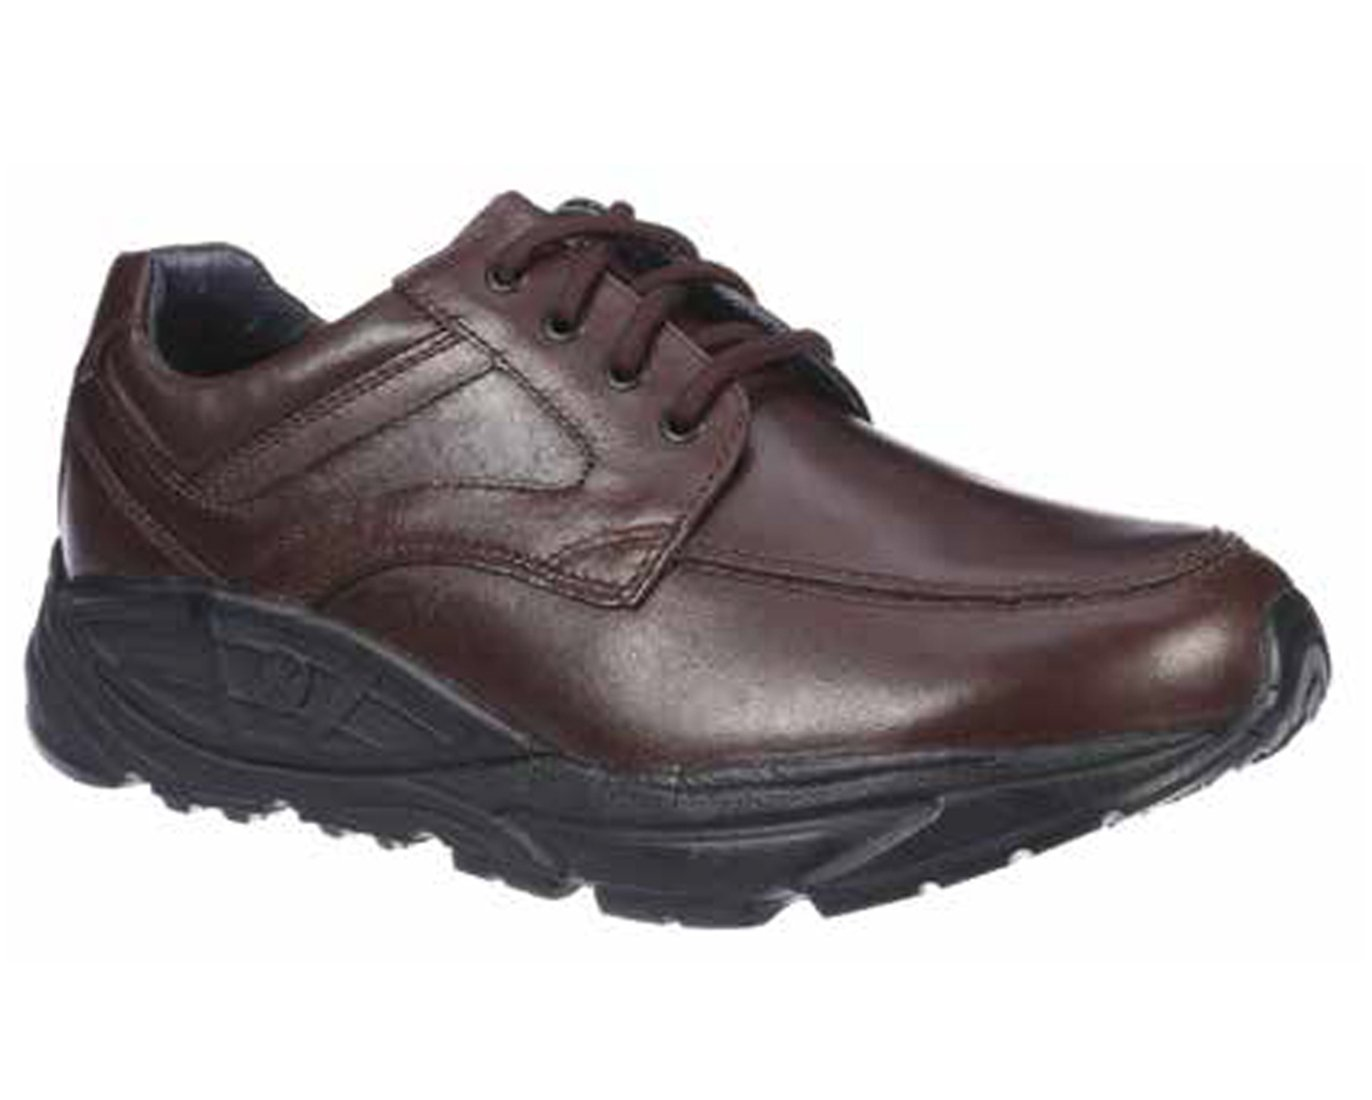 Xelero Oracle II Men's Comfort Therapeutic Extra Depth Casual & Hiking Shoe Leather Lace-up 8 D(M) US Brown